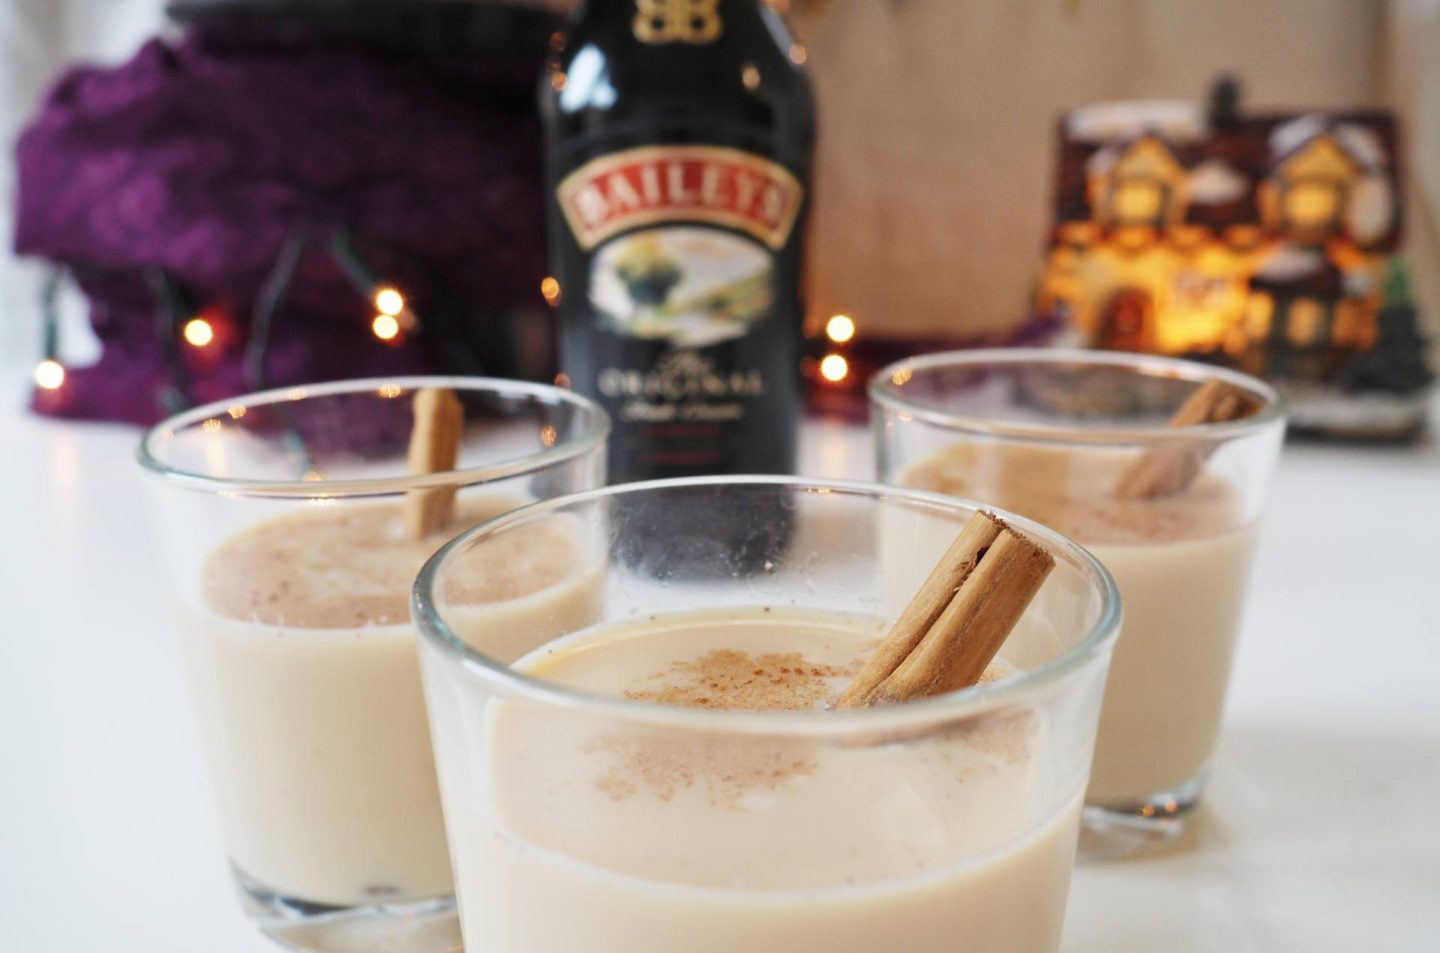 Emma Victoria Stokes Diageo Baileys Eggnog Cocktail Sponsored Post